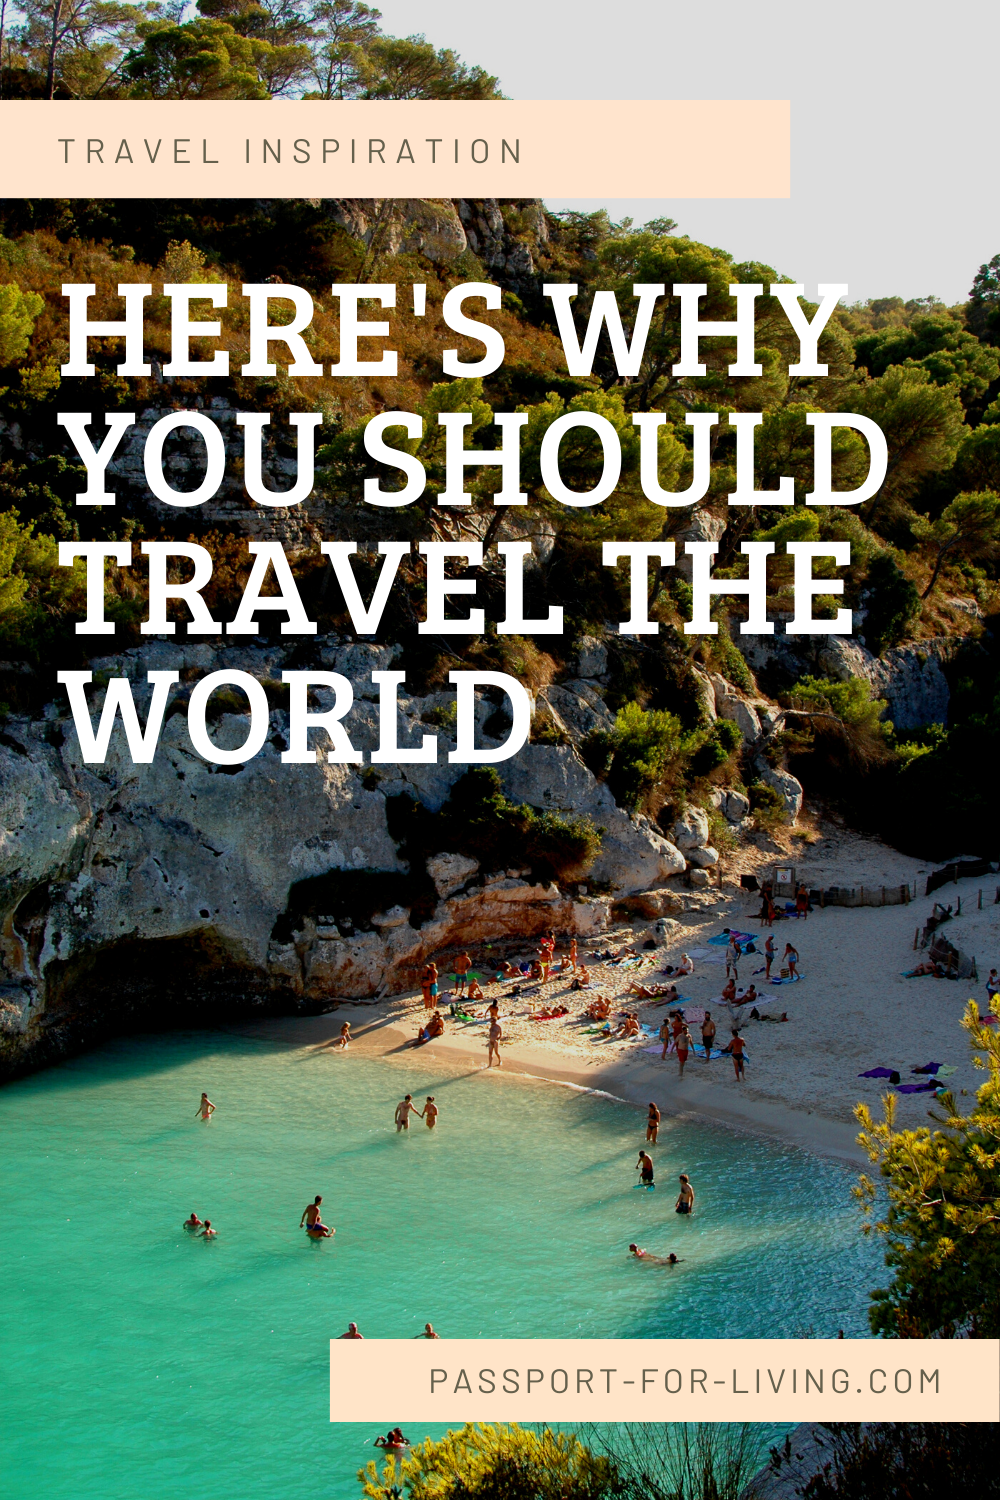 Here's Why You Should Travel the World #travel #wanderlust #europe #africa #asia #usa #travelblogger #travelguide #travelinspiration #traveller #traveler #travelmore #globetrotter #destinations #amazingplaces